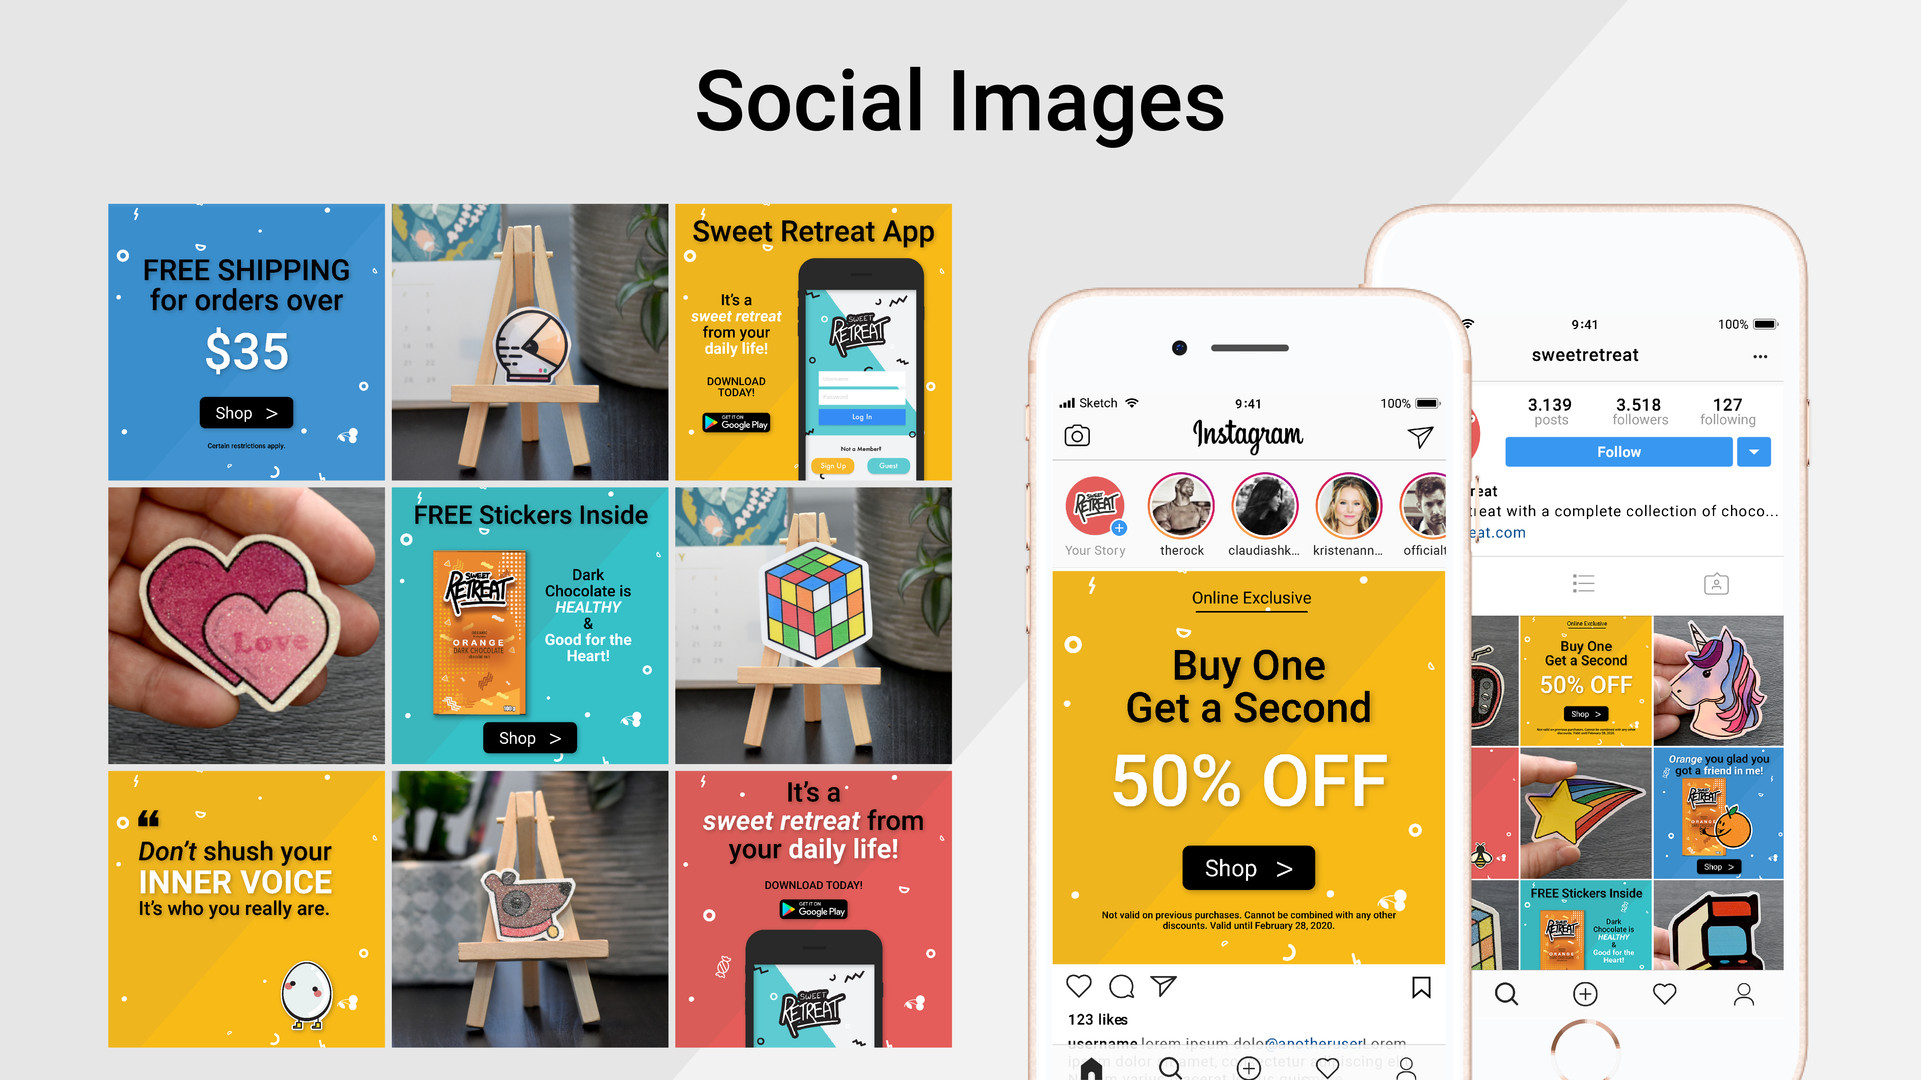 Social Images